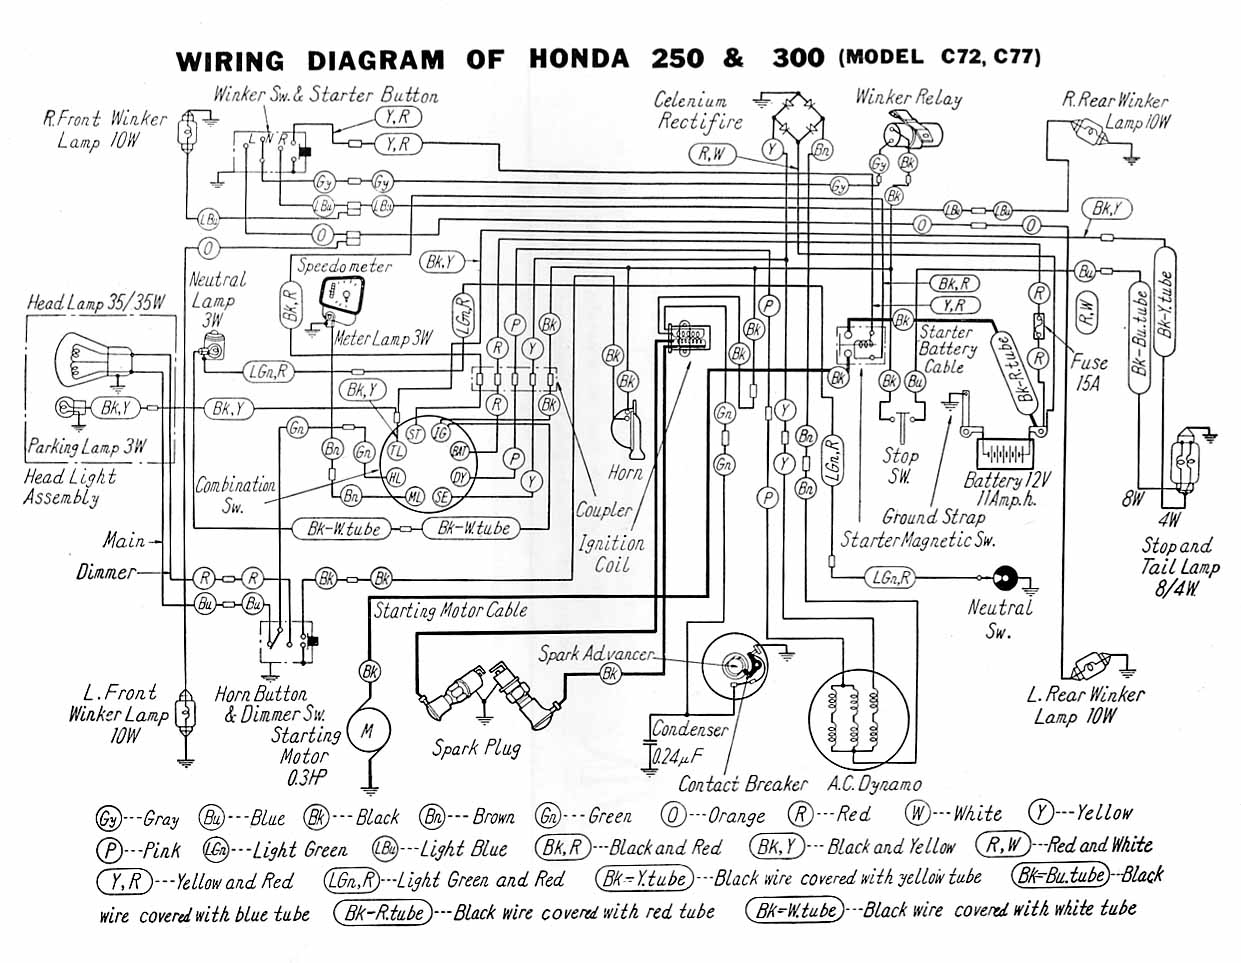 1978 t140 wiring diagram wiring diagrams and schematics 1973 75 triumph t140 tr7 u k made cloth wiring harness pn 99